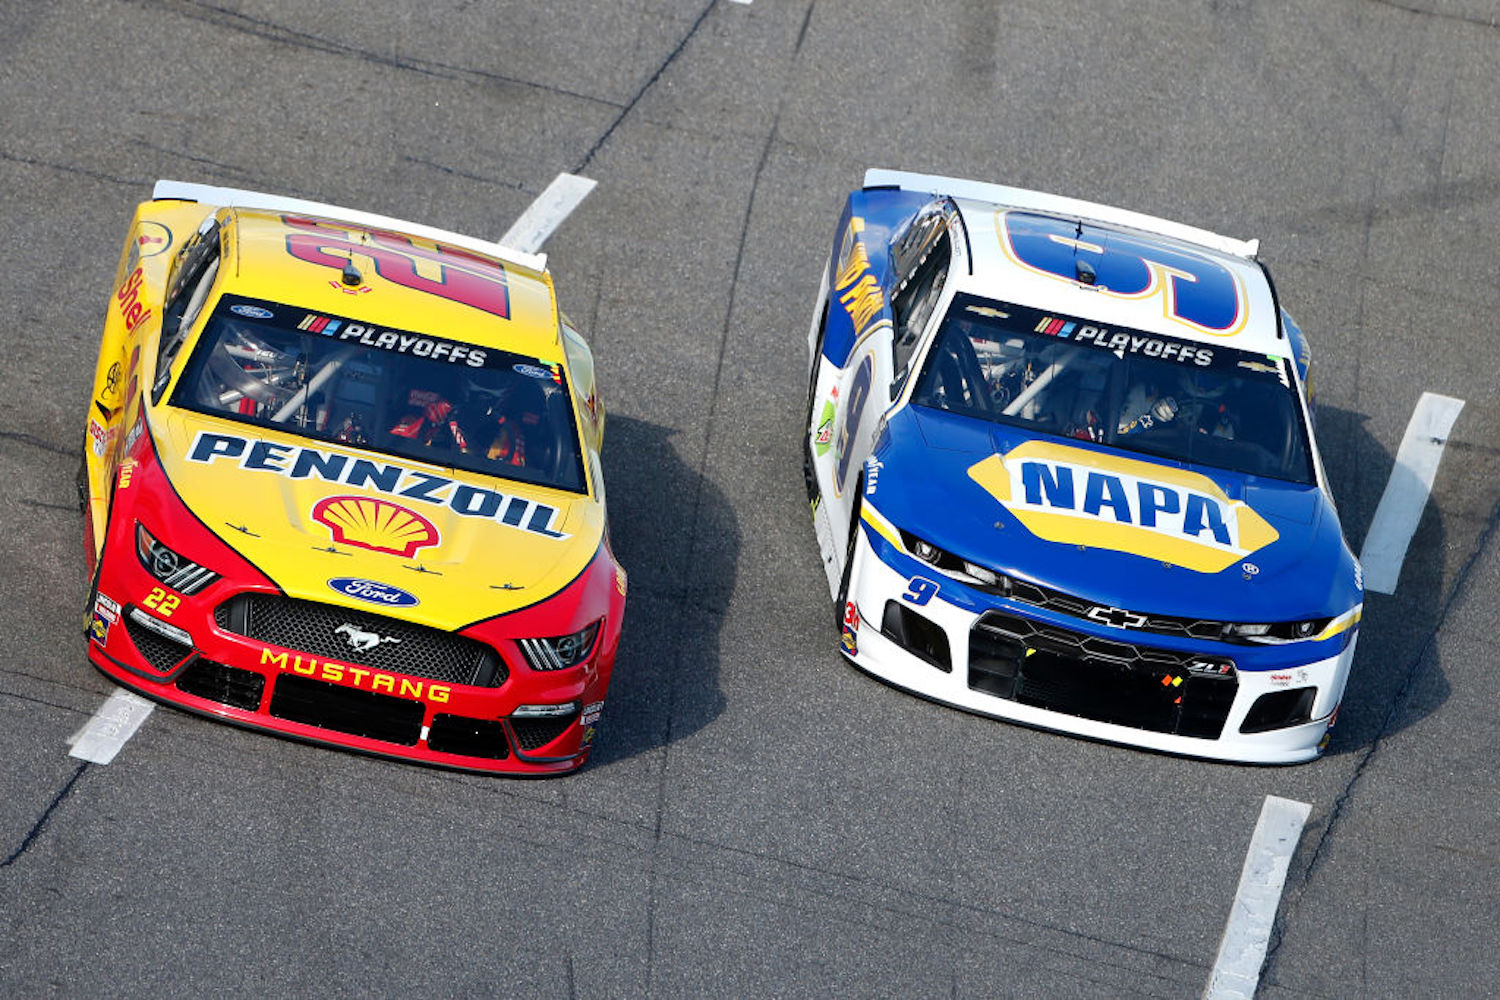 NASCAR's Championship 4 Race is set for this Sunday, and we could see some fireworks between Joey Logano and Chase Elliott.